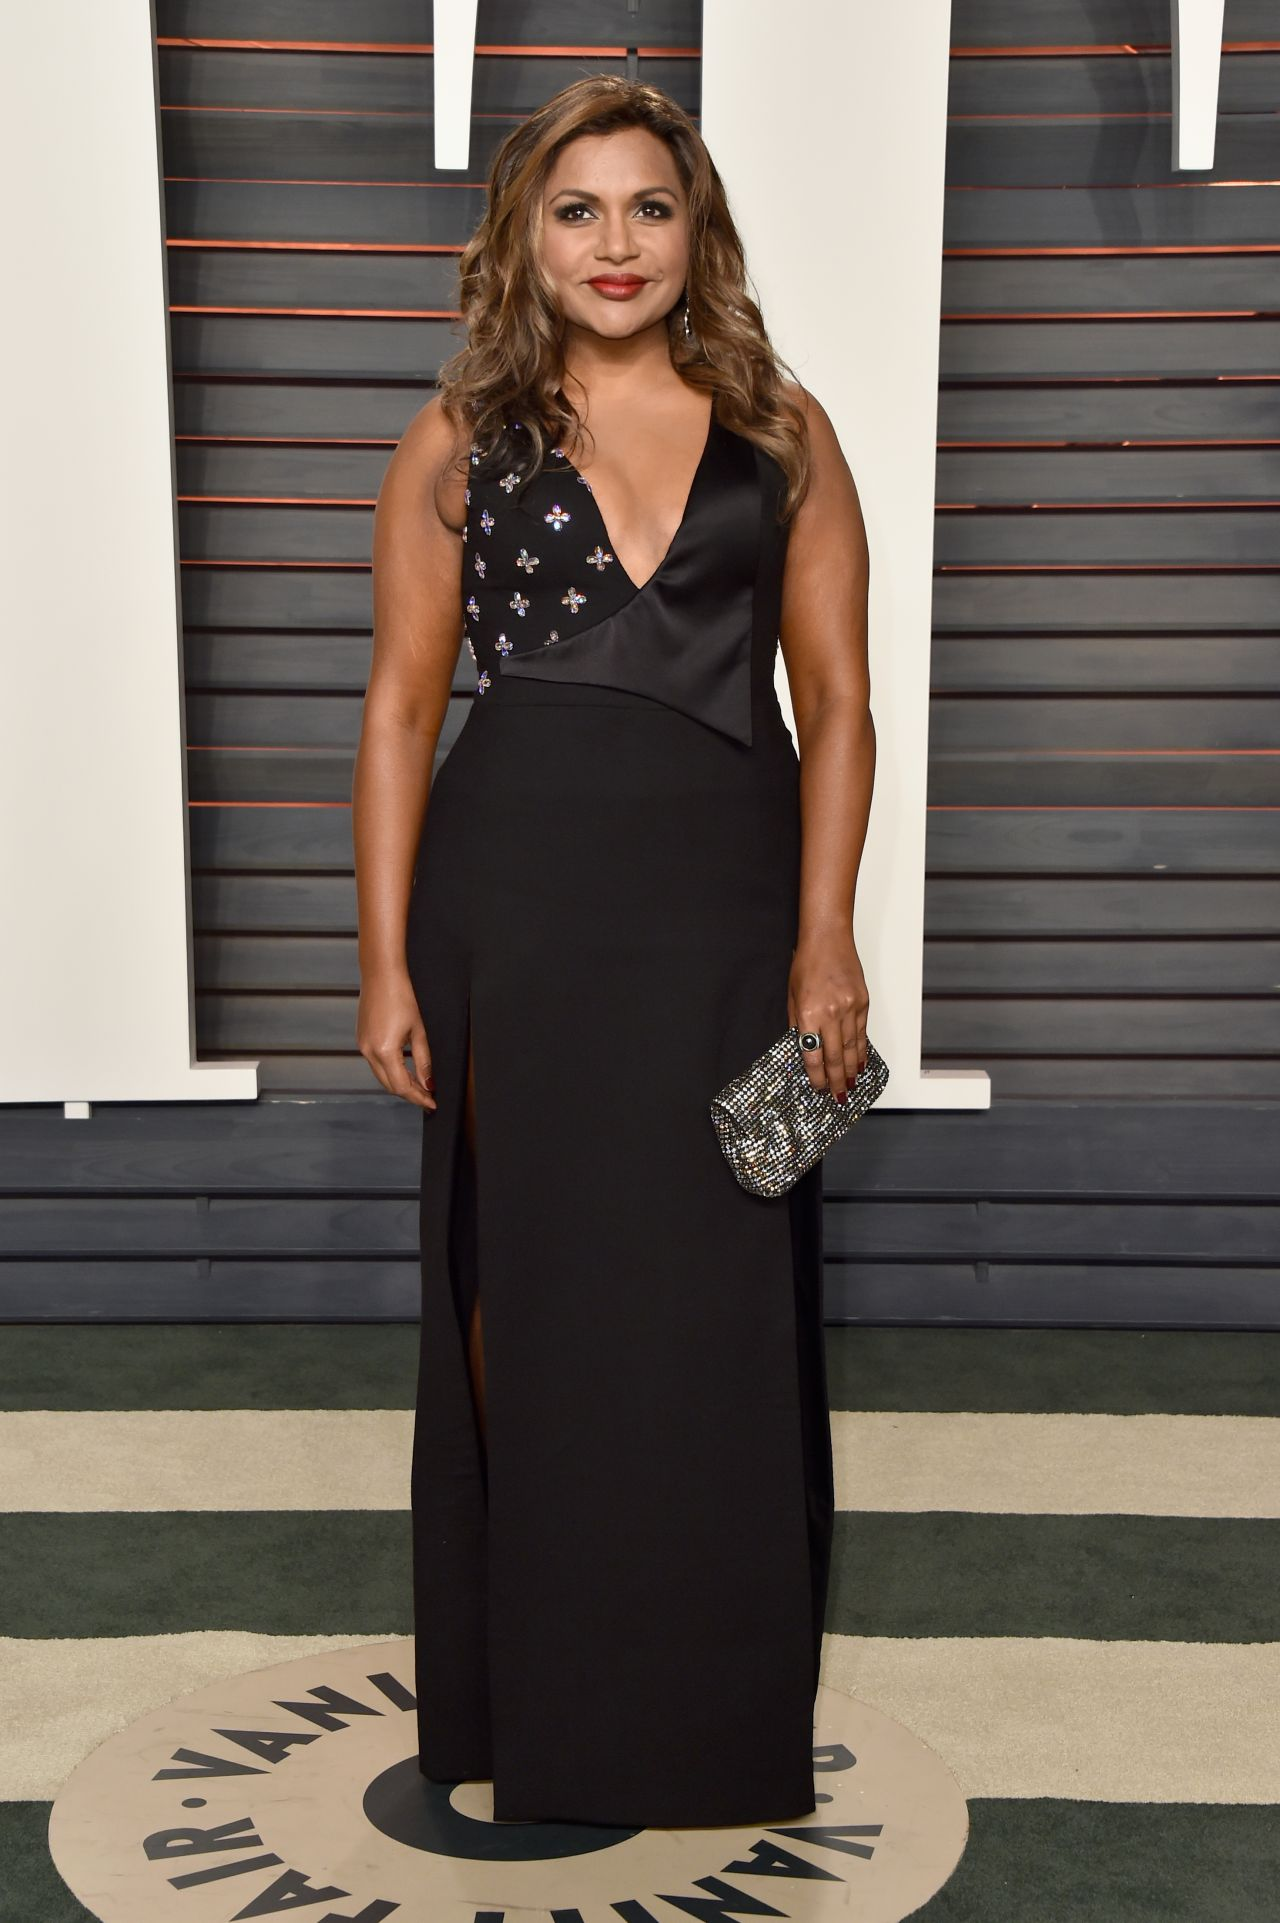 mindy-kaling-2016-vanity-fair-oscar-party-in-beverly-hills-ca-3